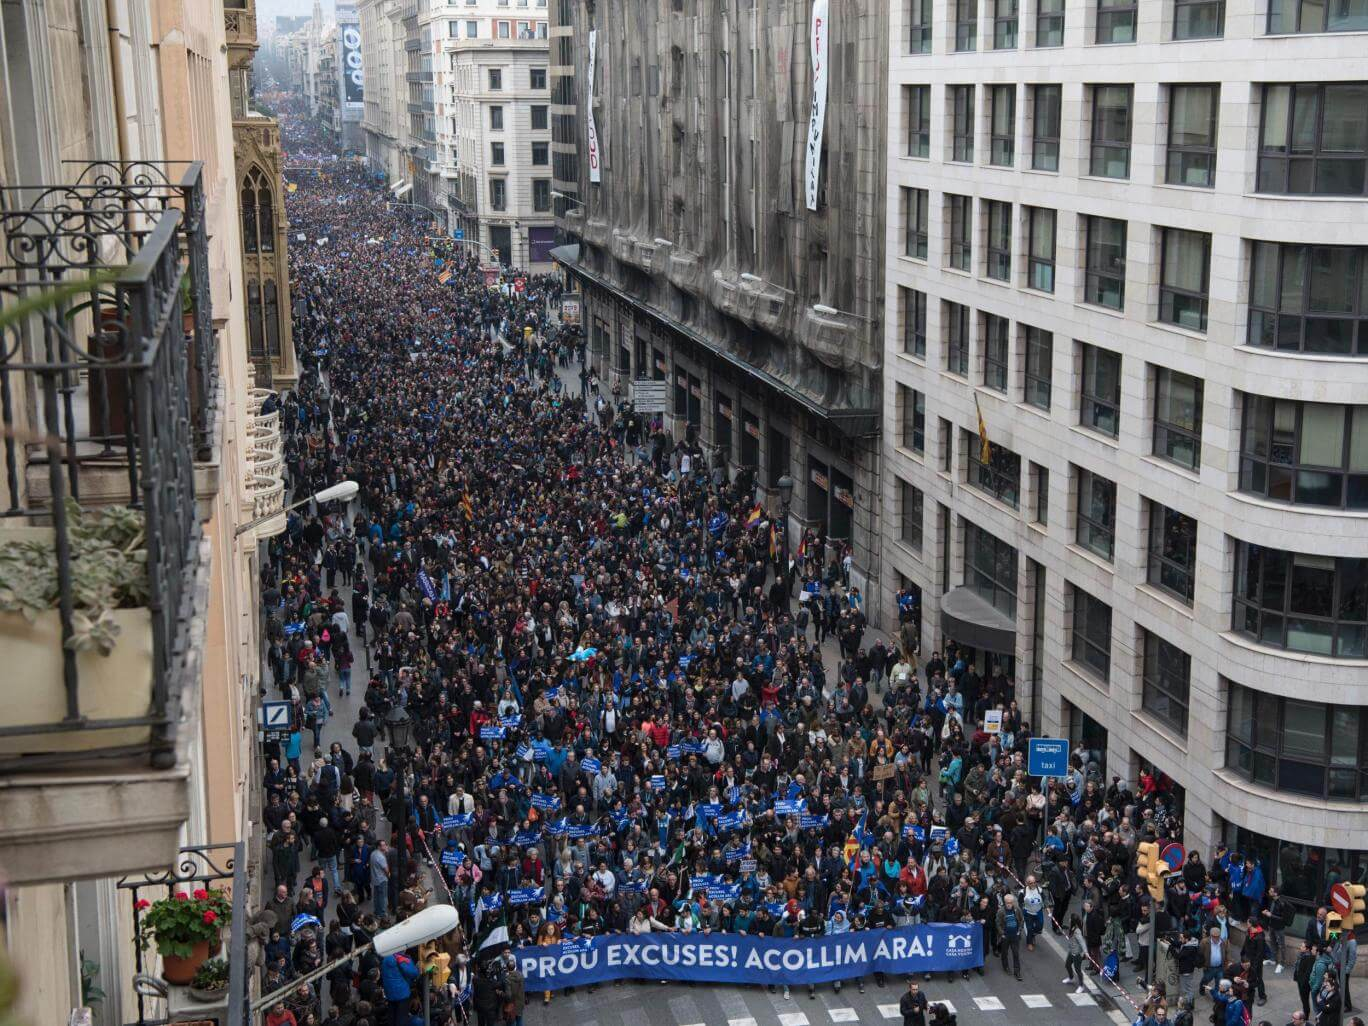 More than 160,000 march in Barcelona to demand Spain takes in more refugees